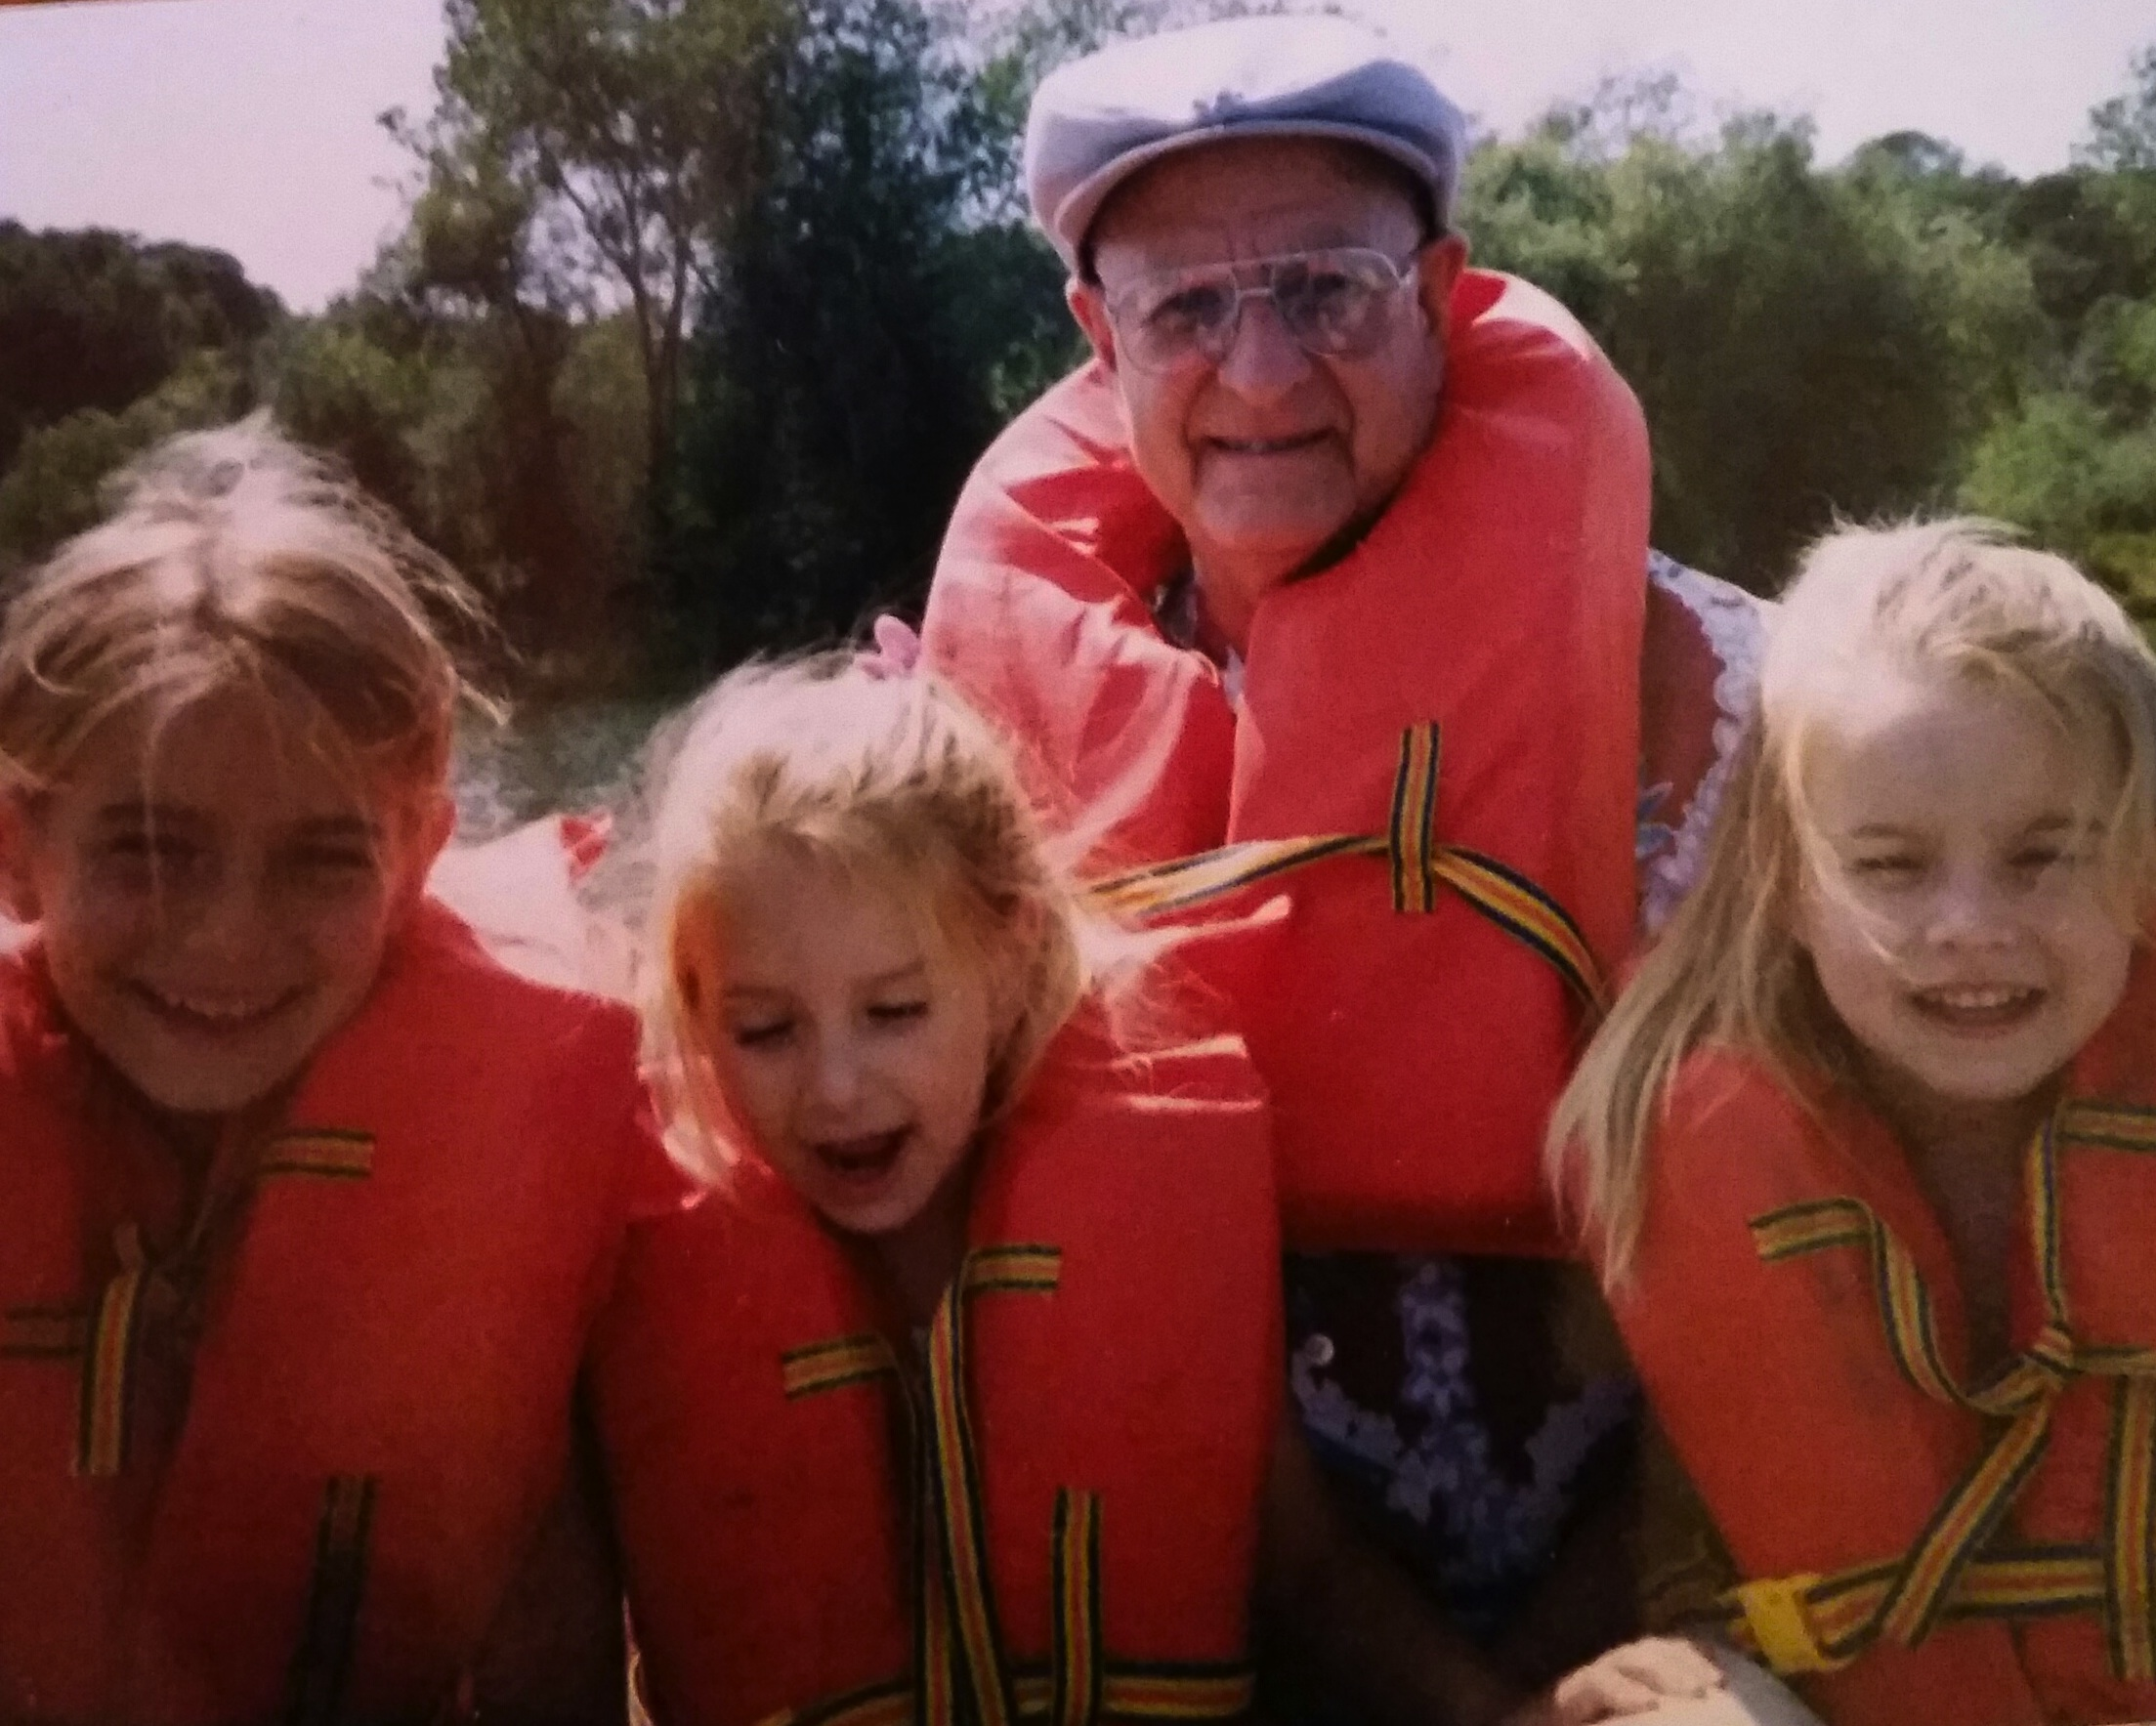 Grandpa with my sisters and I: Califa, Gwen + Ash